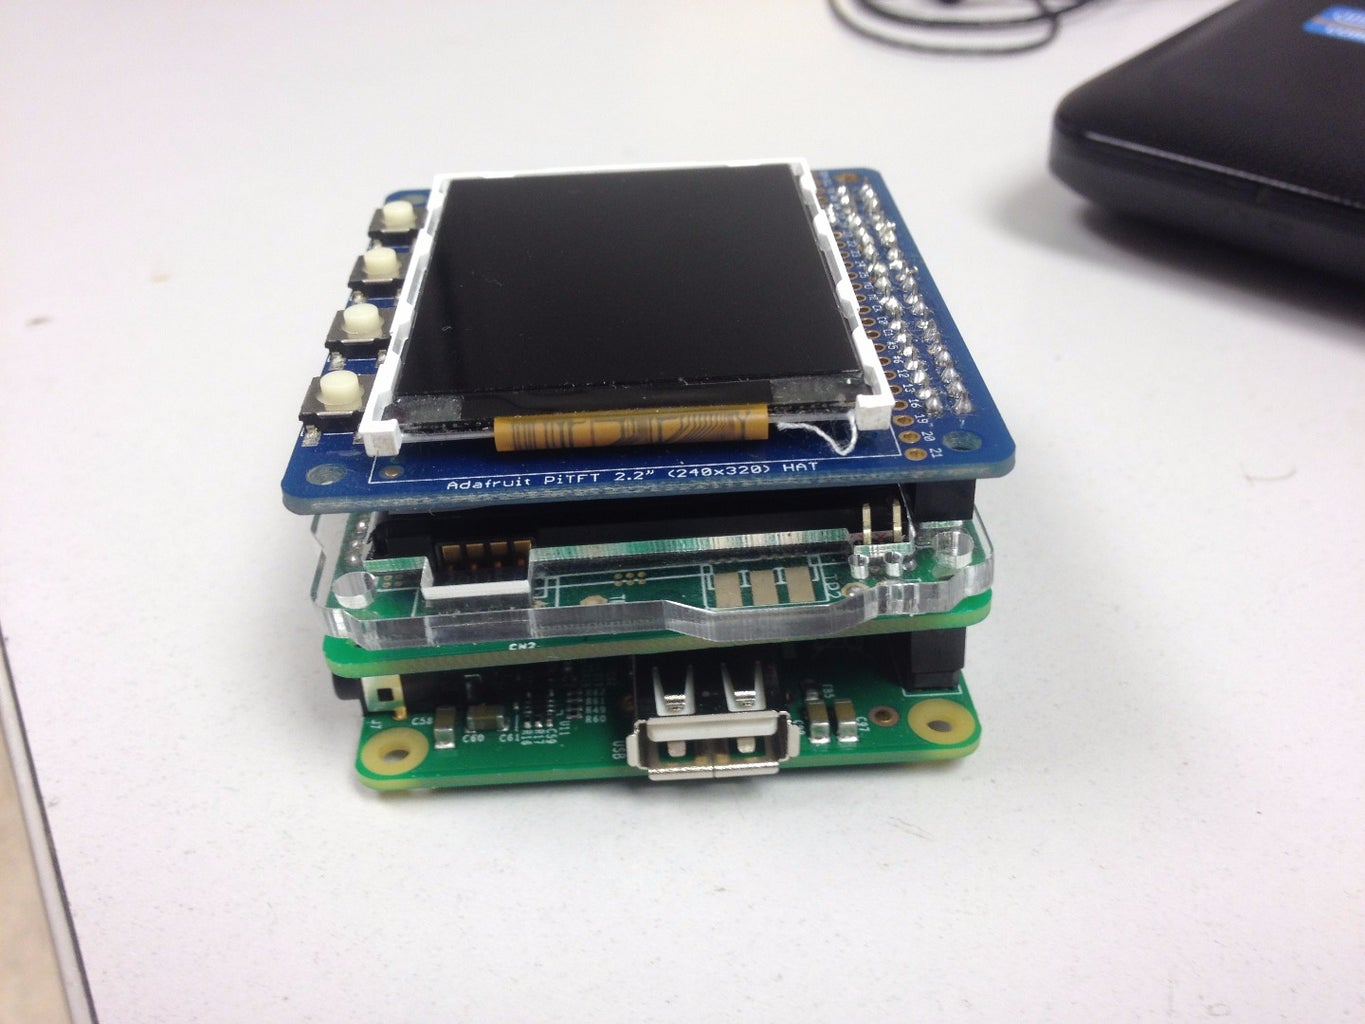 Download AdvMame for Raspberry Pi